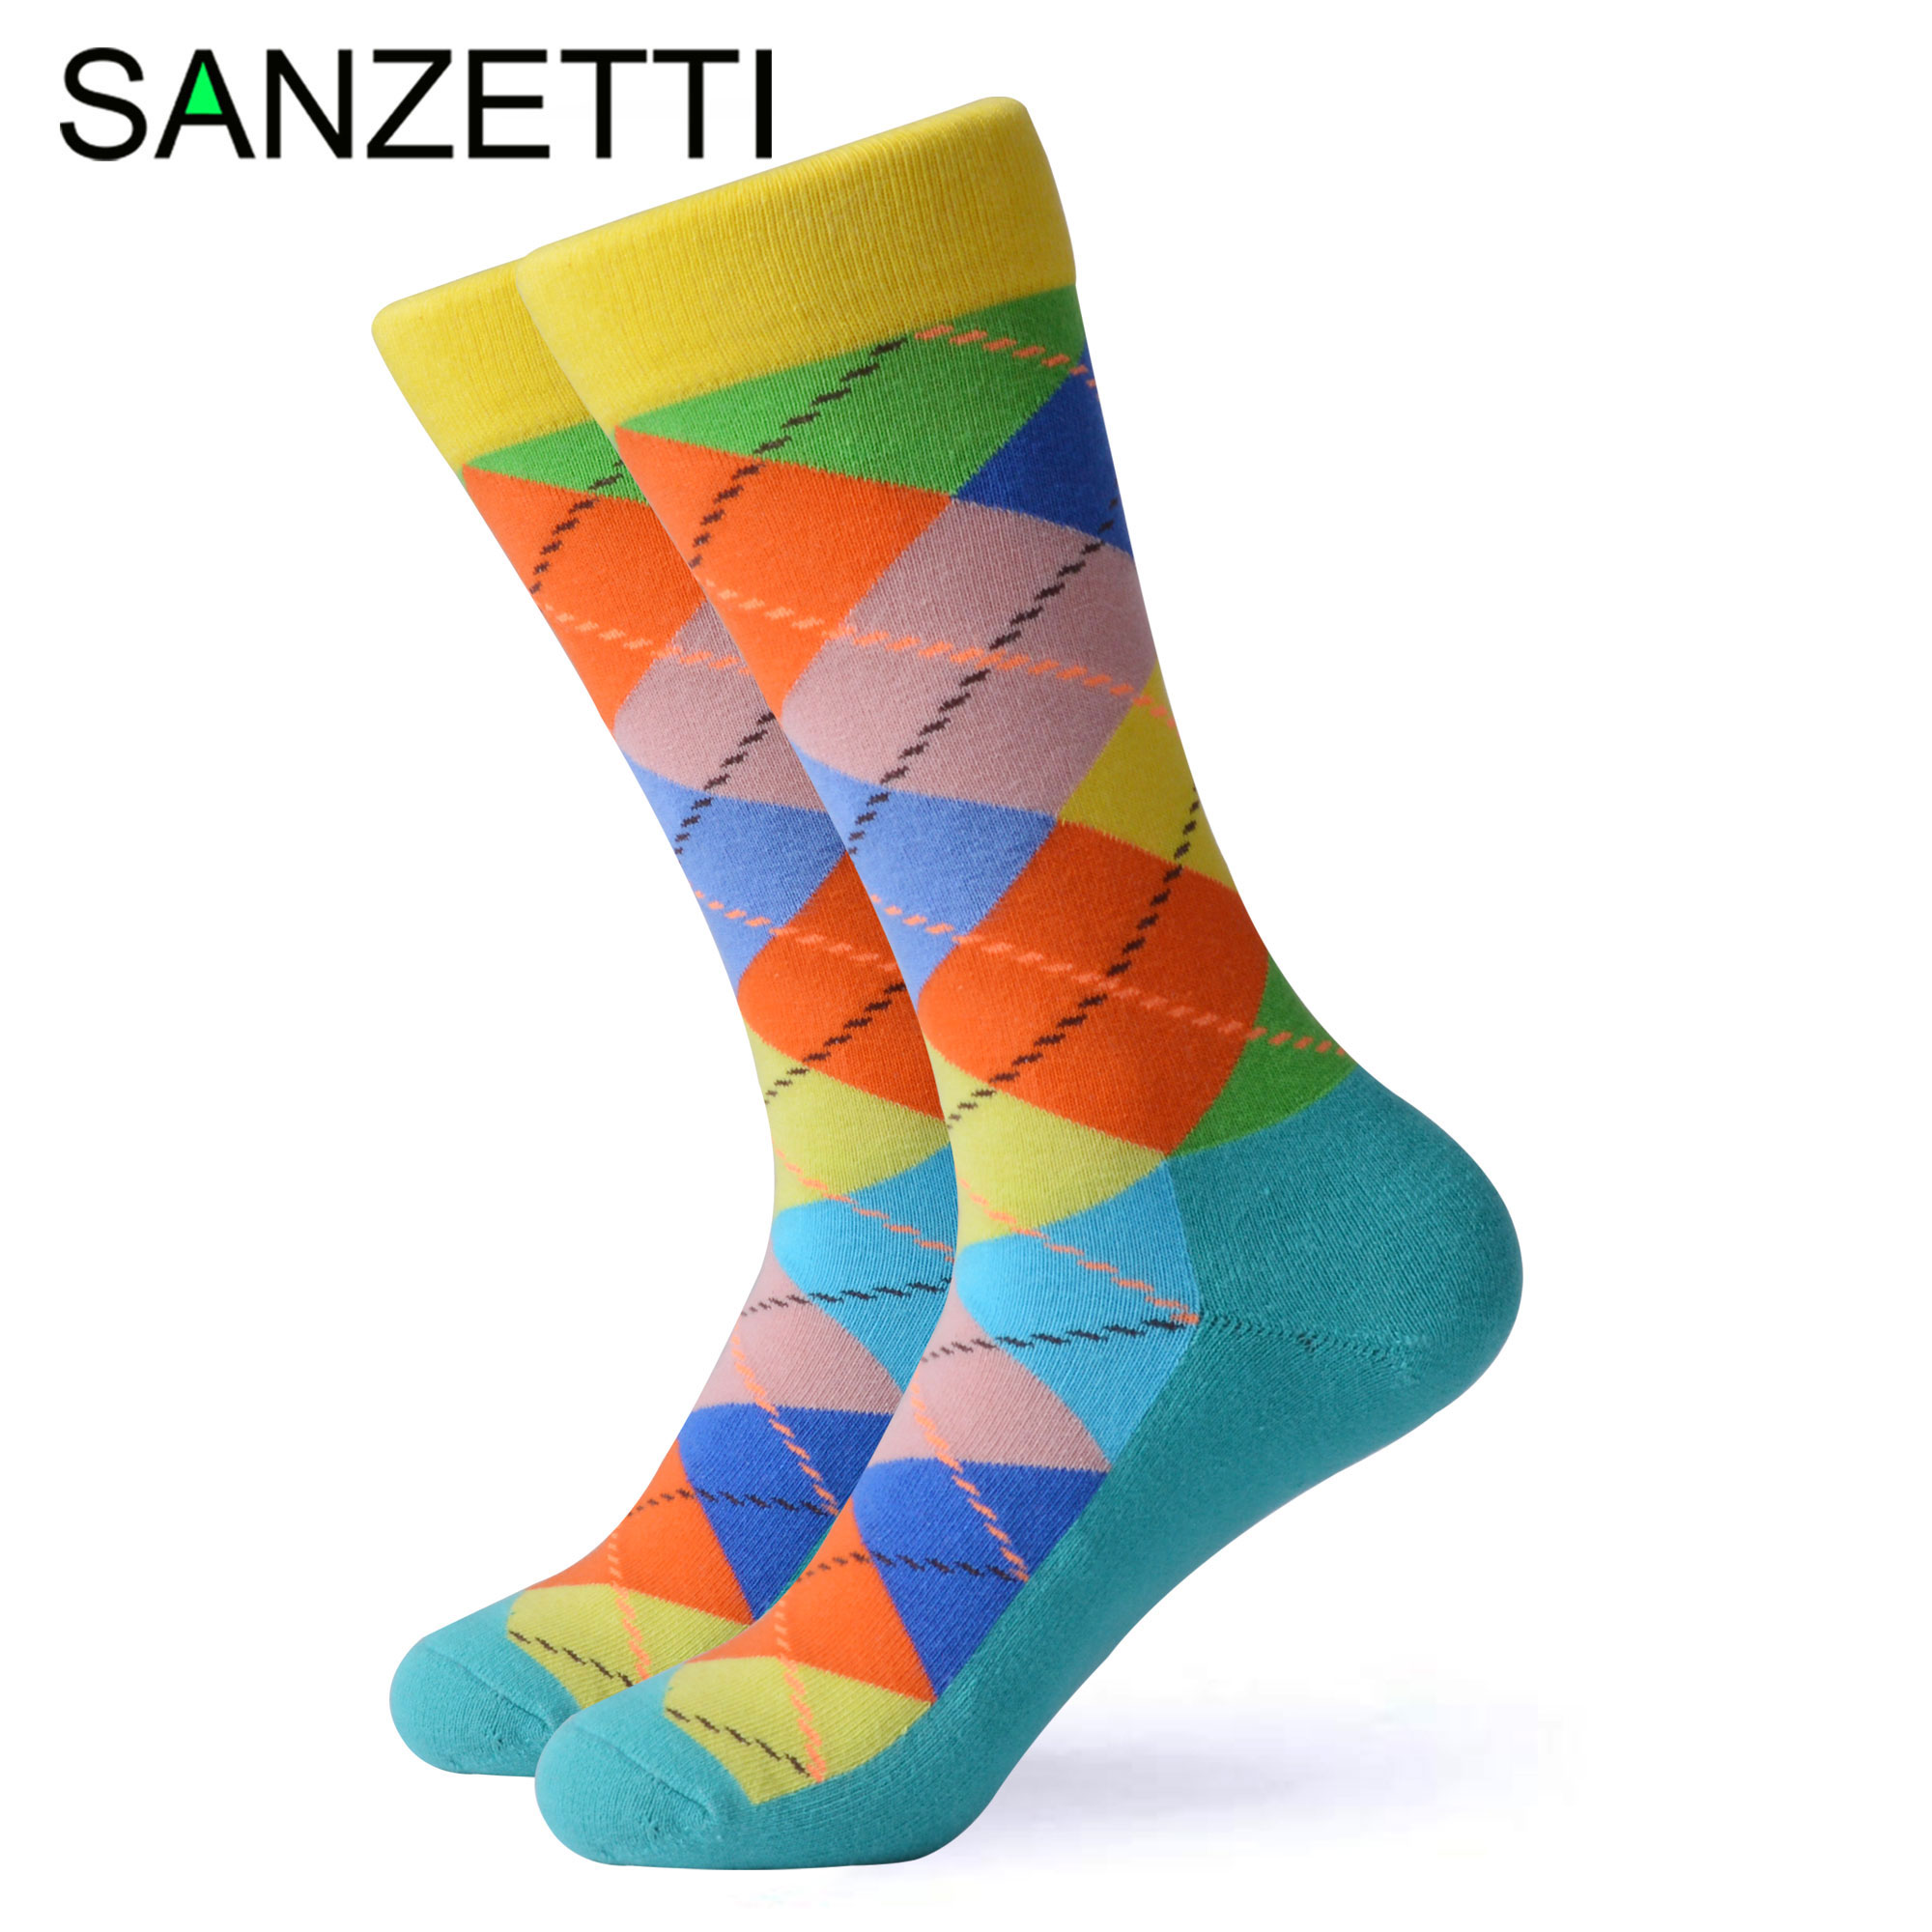 SANZETTI 1 Pair Happy Socks High Quality Men's Colorful Comfortable Combed Cotton Terry Socks Novelty Gift Wedding Dress Socks